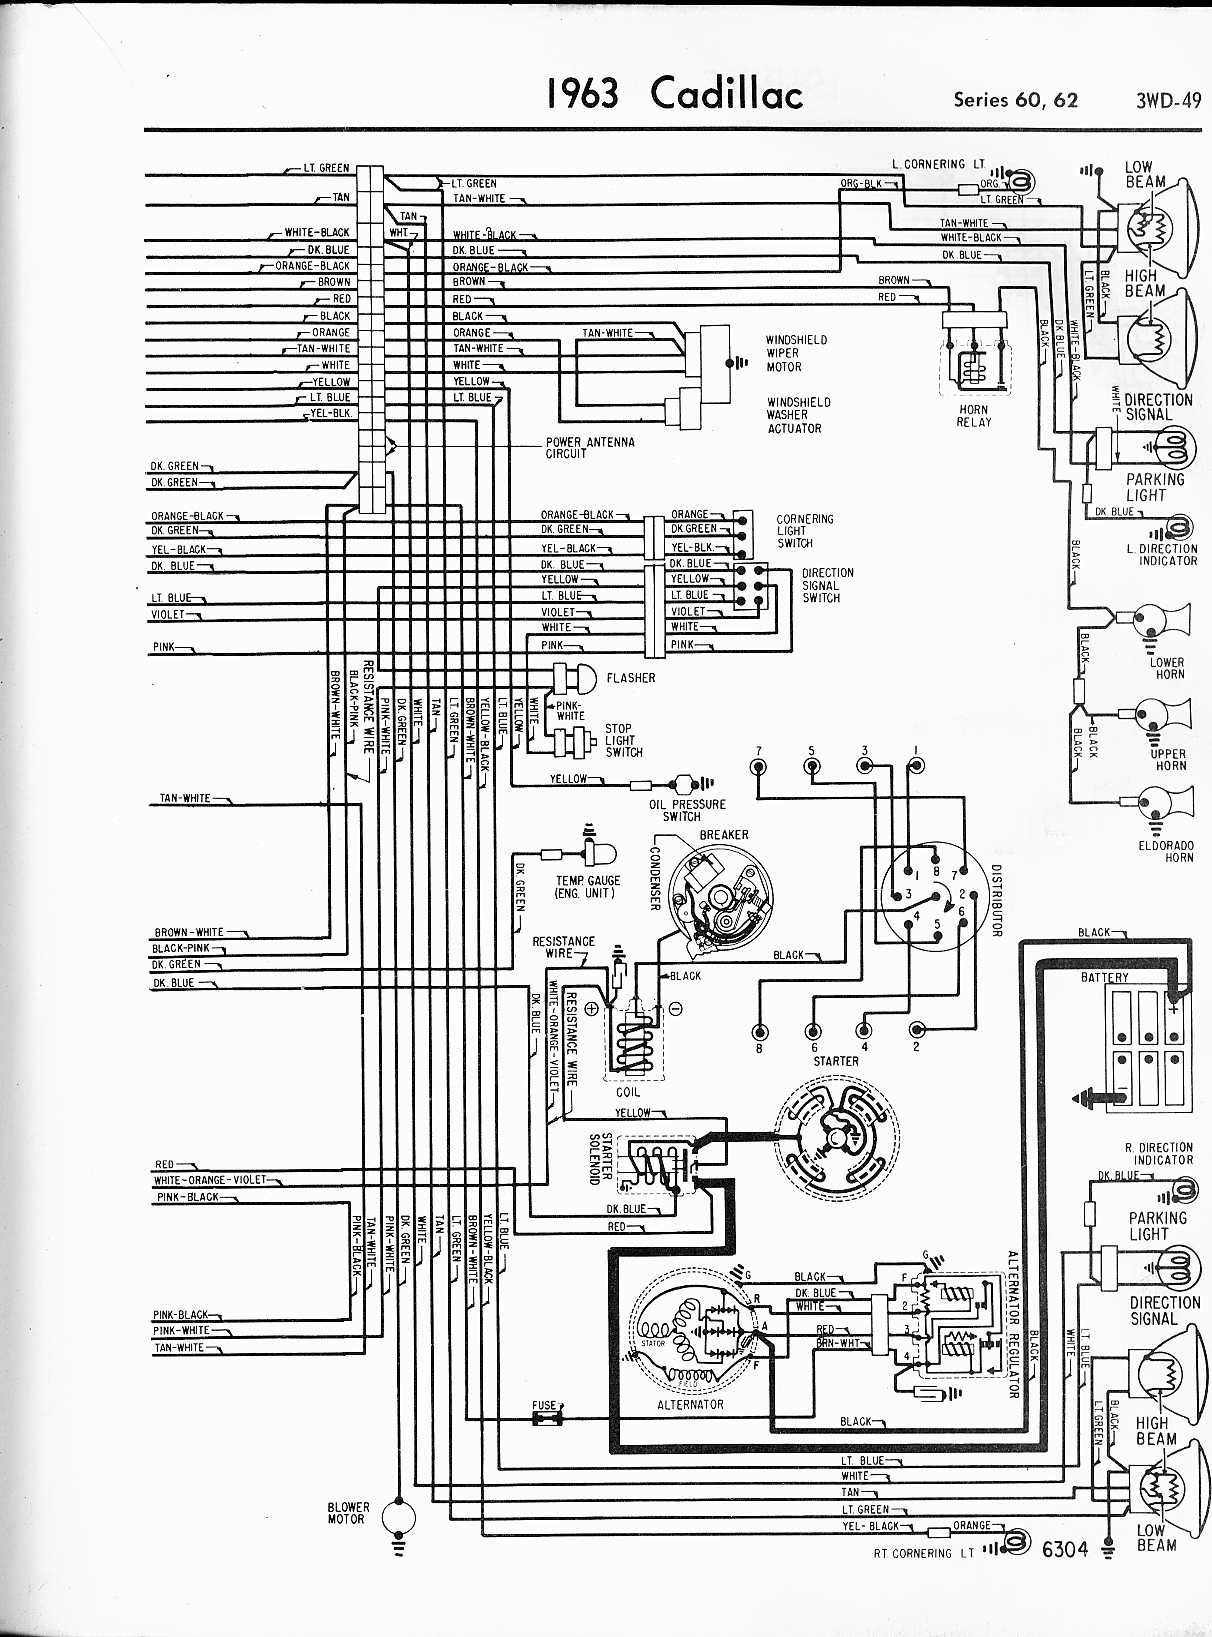 Wiring Diagram For A 1965 Cadillac Diagram Base Website